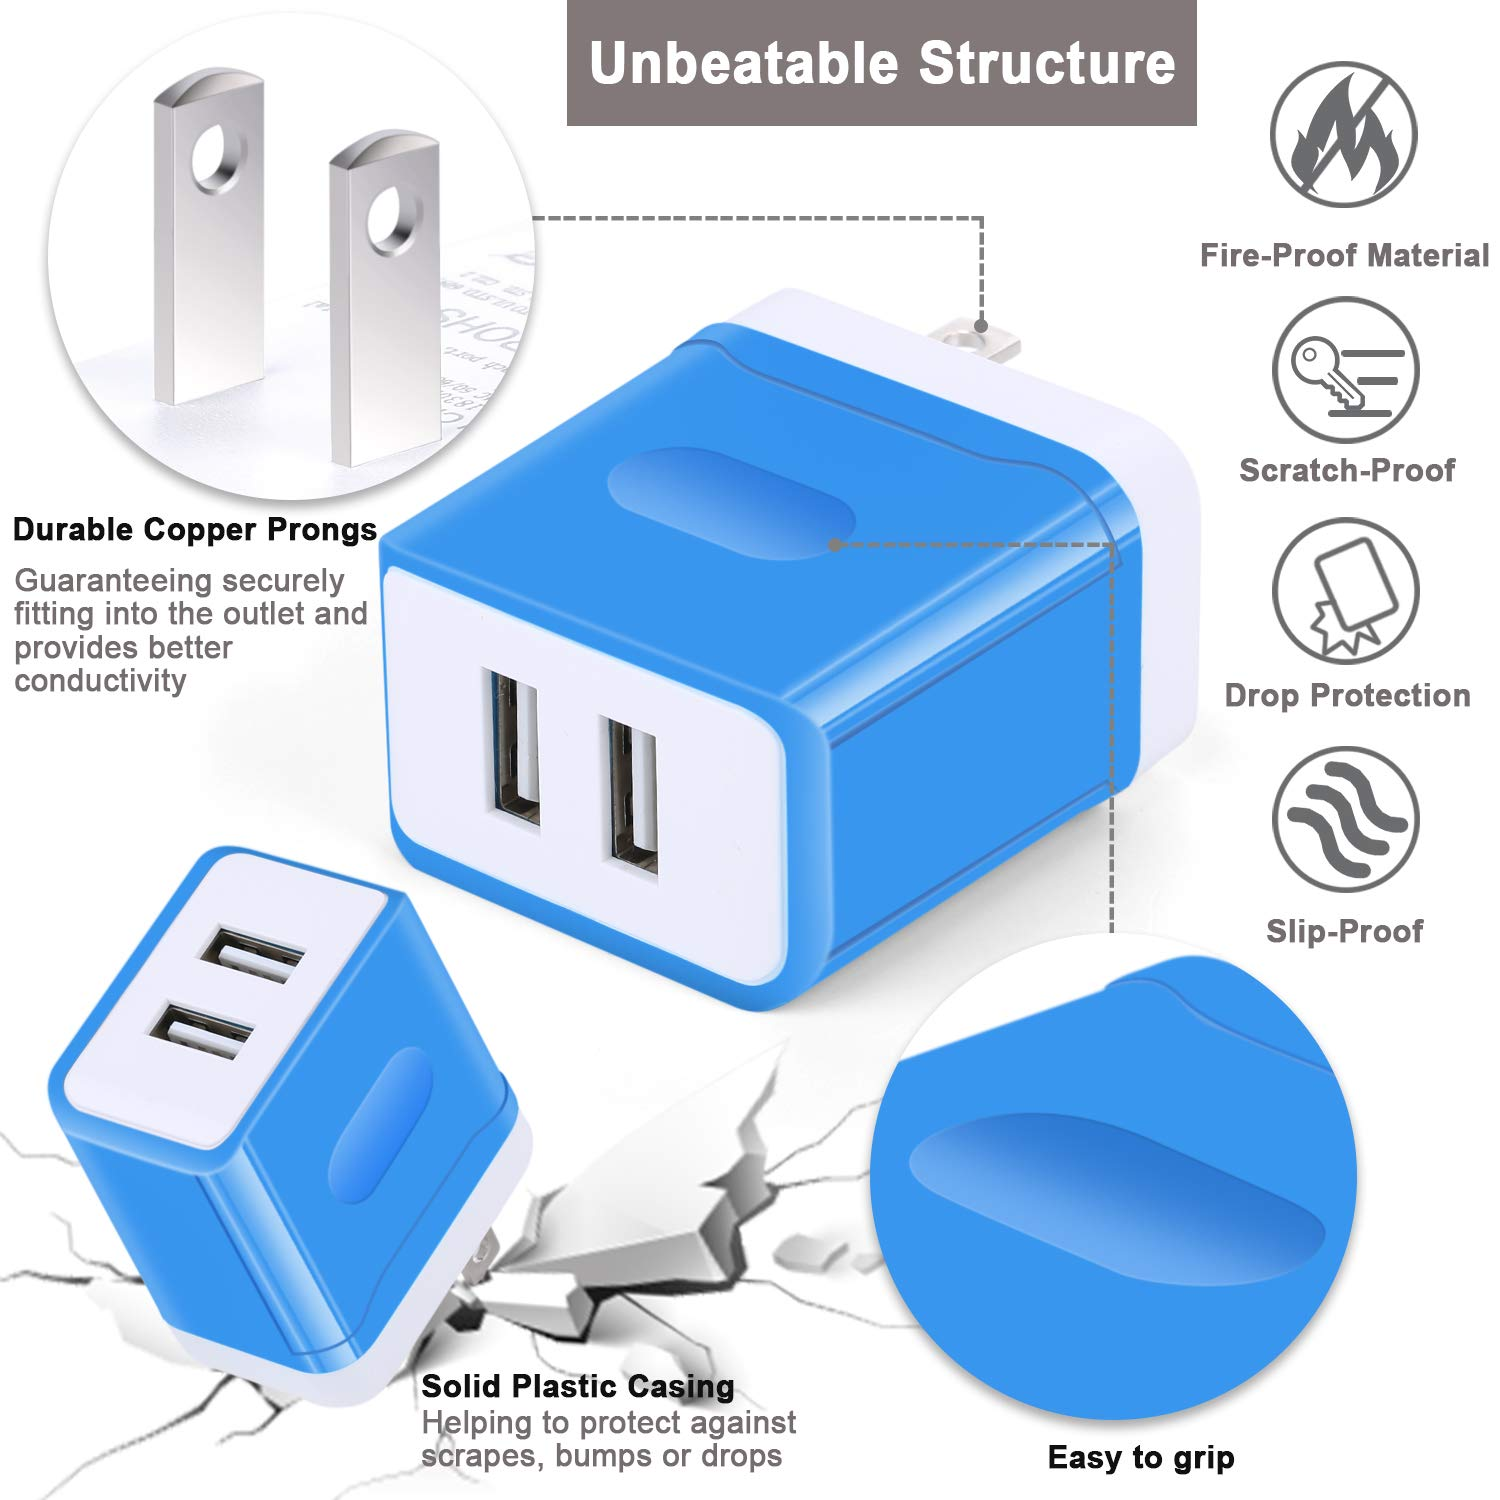 Amazon.com: USB Charger, Eversame 2-Port USB Travel Home Wall Charger Plug Adapter, 3.1A Charging Station Compatible iPhone X/8/7/6 Plus, iPad Pro/Air 2, ...